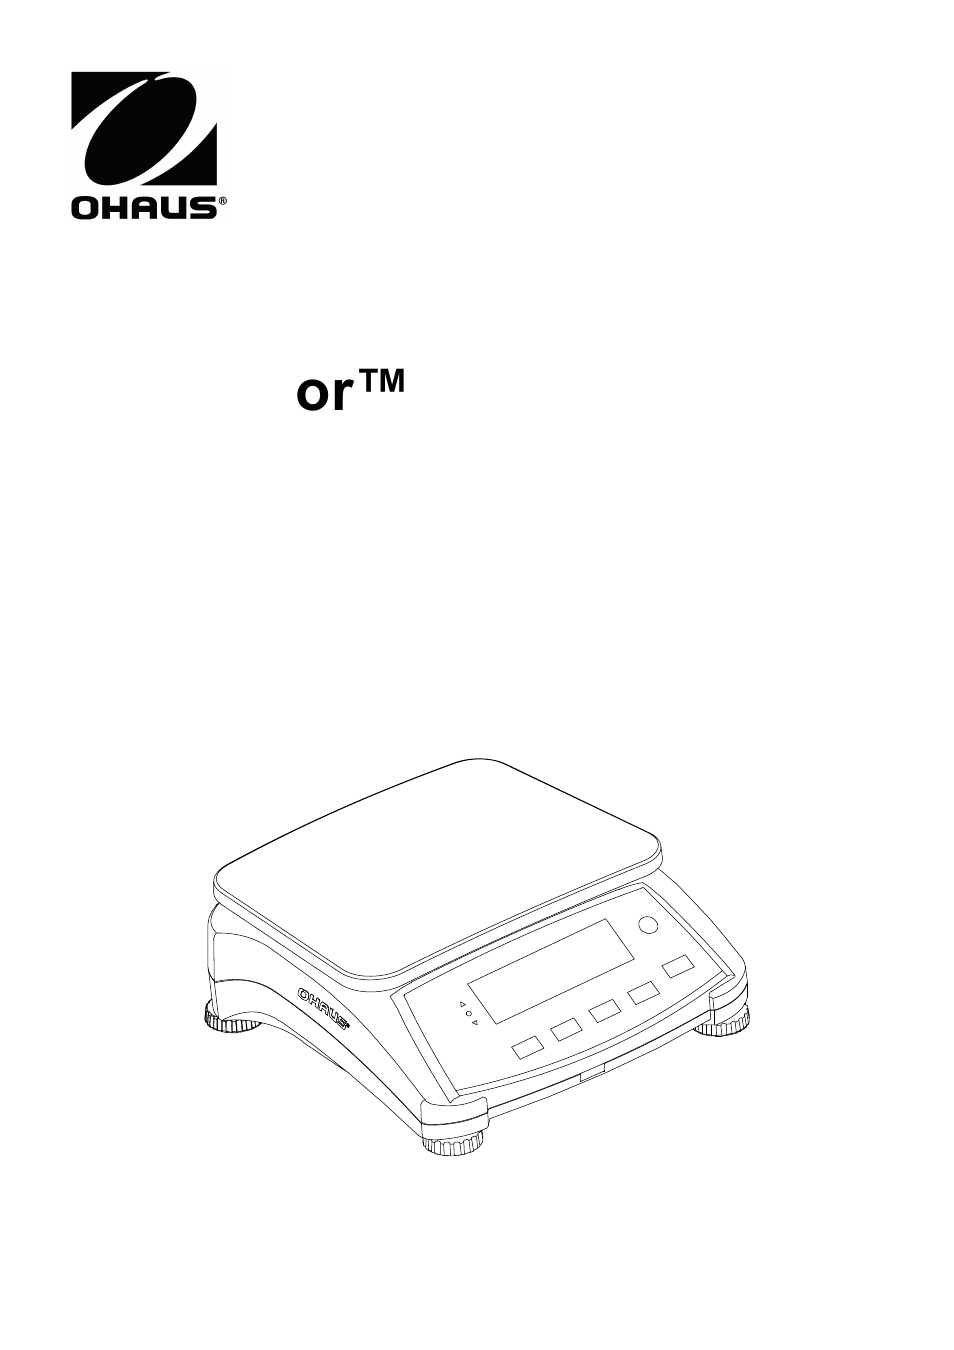 Ohaus Valor 7000 Series COMPACT FOOD SCALES Manual User